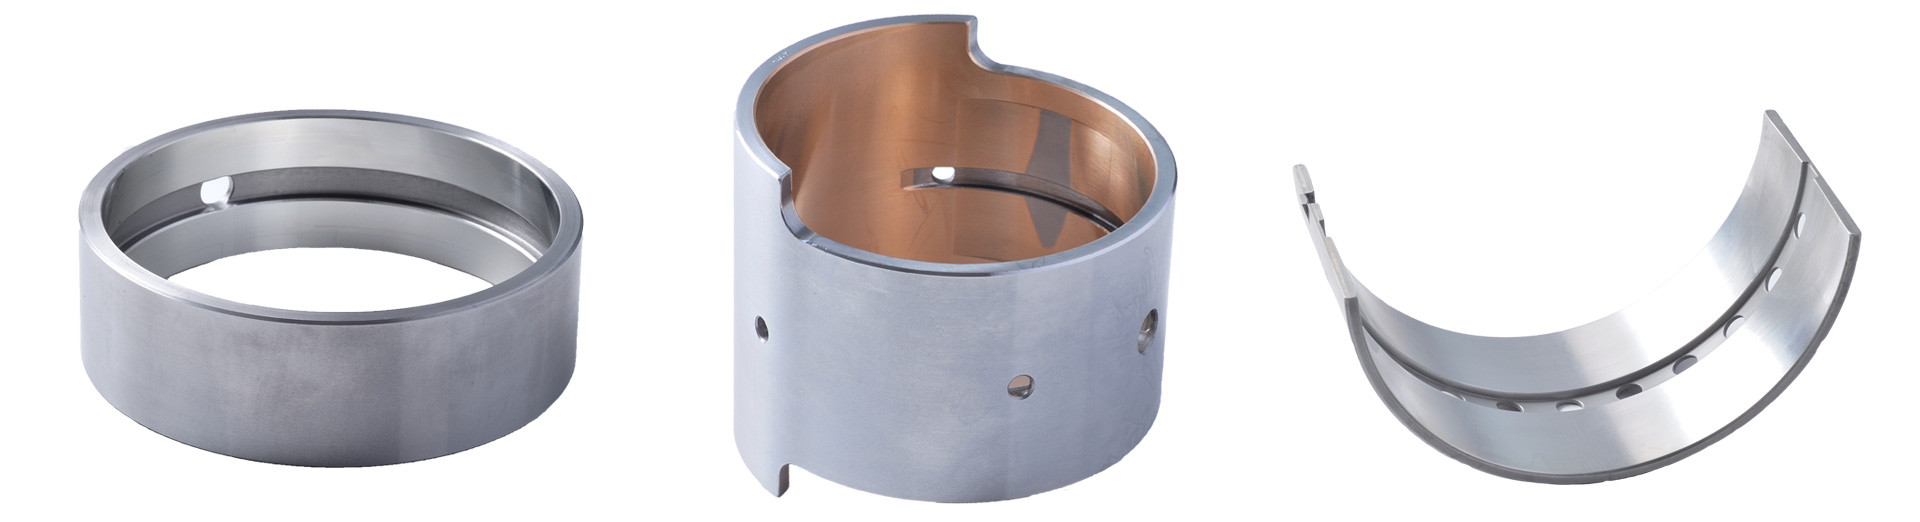 product1_metal